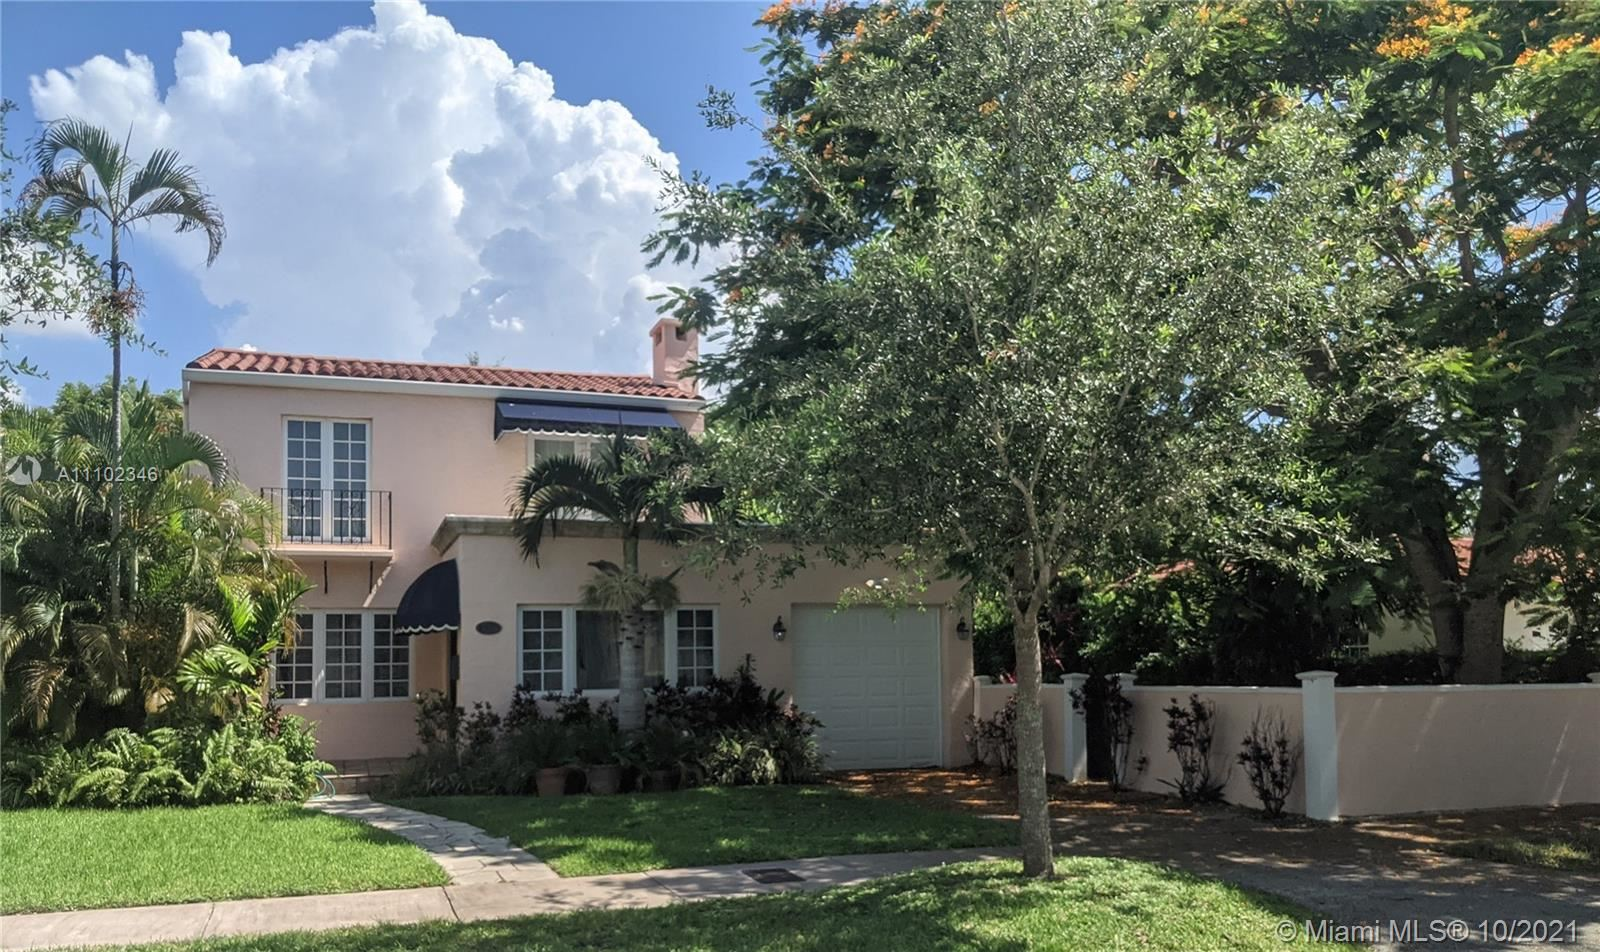 Photo of 315 Cadima Ave, Coral Gables, FL 33134 (MLS # A11102346)